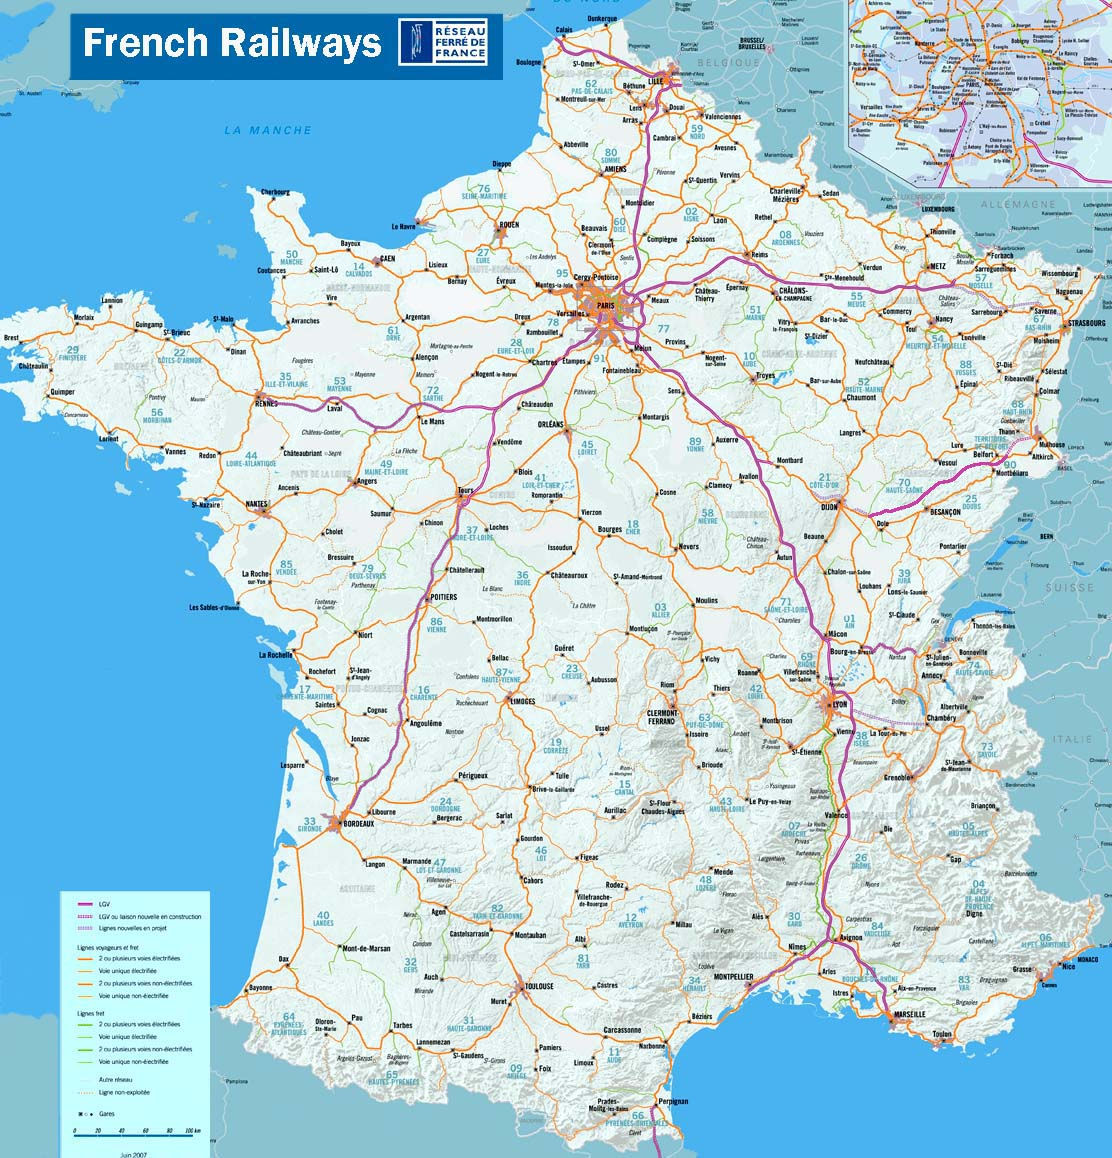 Map Of France Detailed.French Railway Network Map About France Com Travel